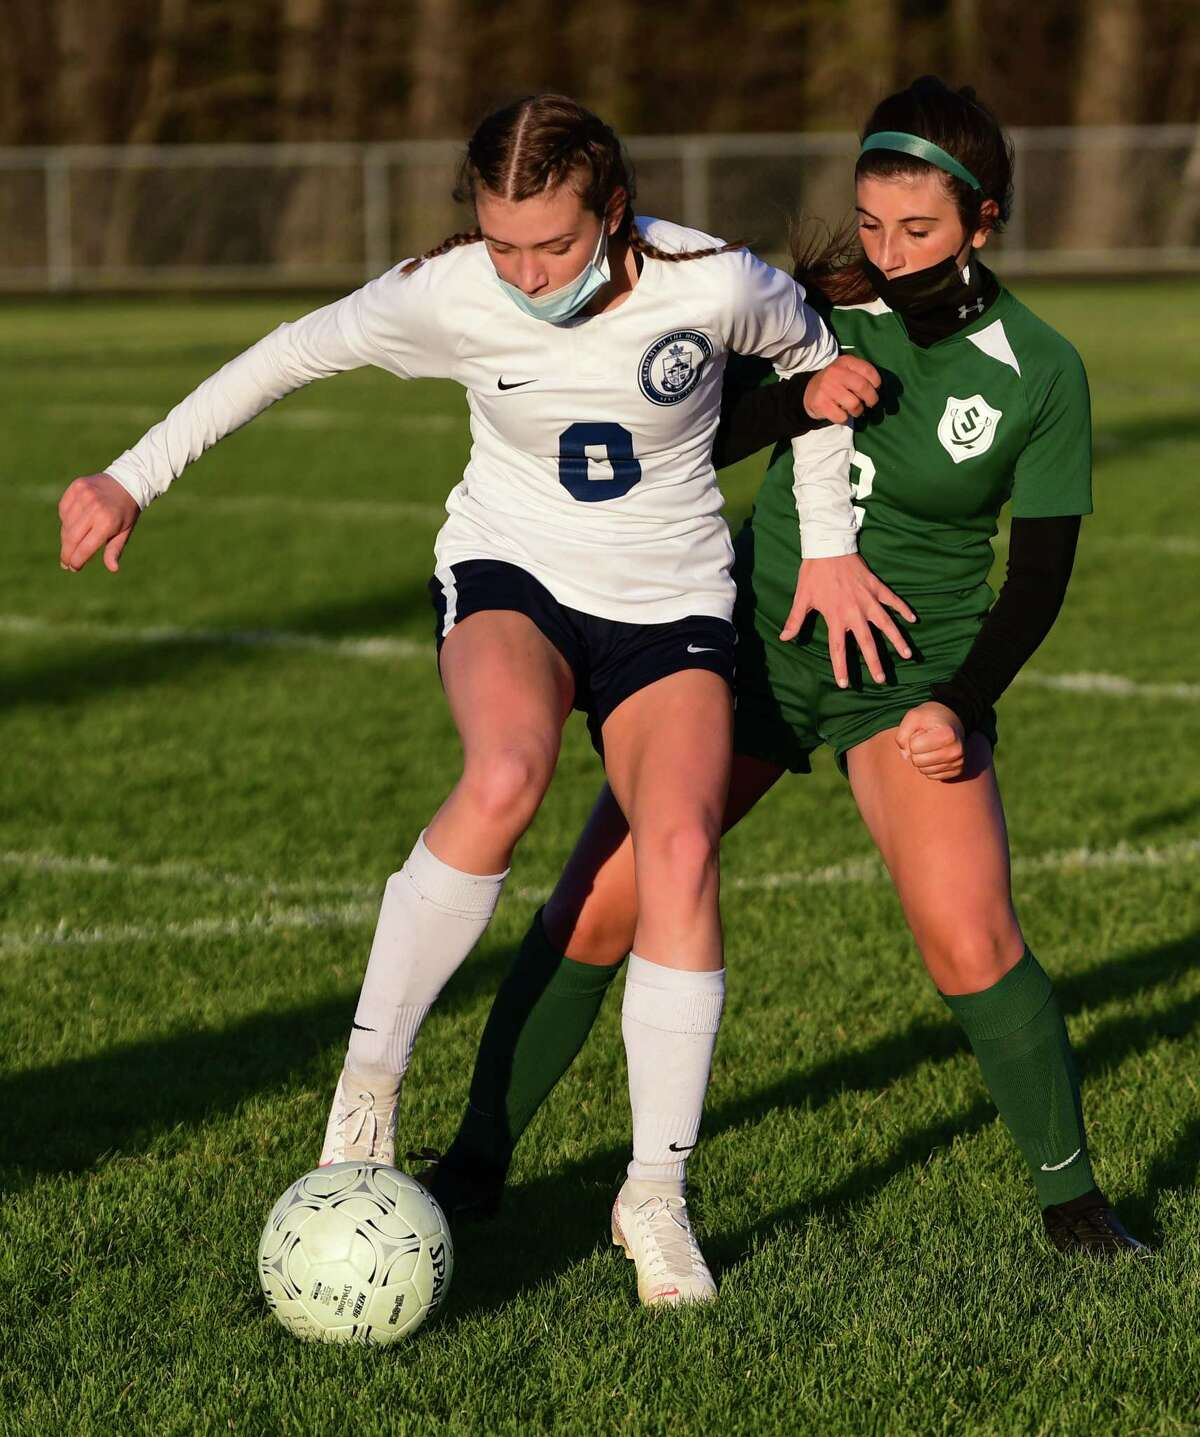 Academy of Holy Names' Elizabeth Harris, left, battles for the ball with Schalmont's Gabriela Amoroso during a soccer game on Monday, April 26, 2021 in Rotterdam, N.Y. (Lori Van Buren/Times Union)